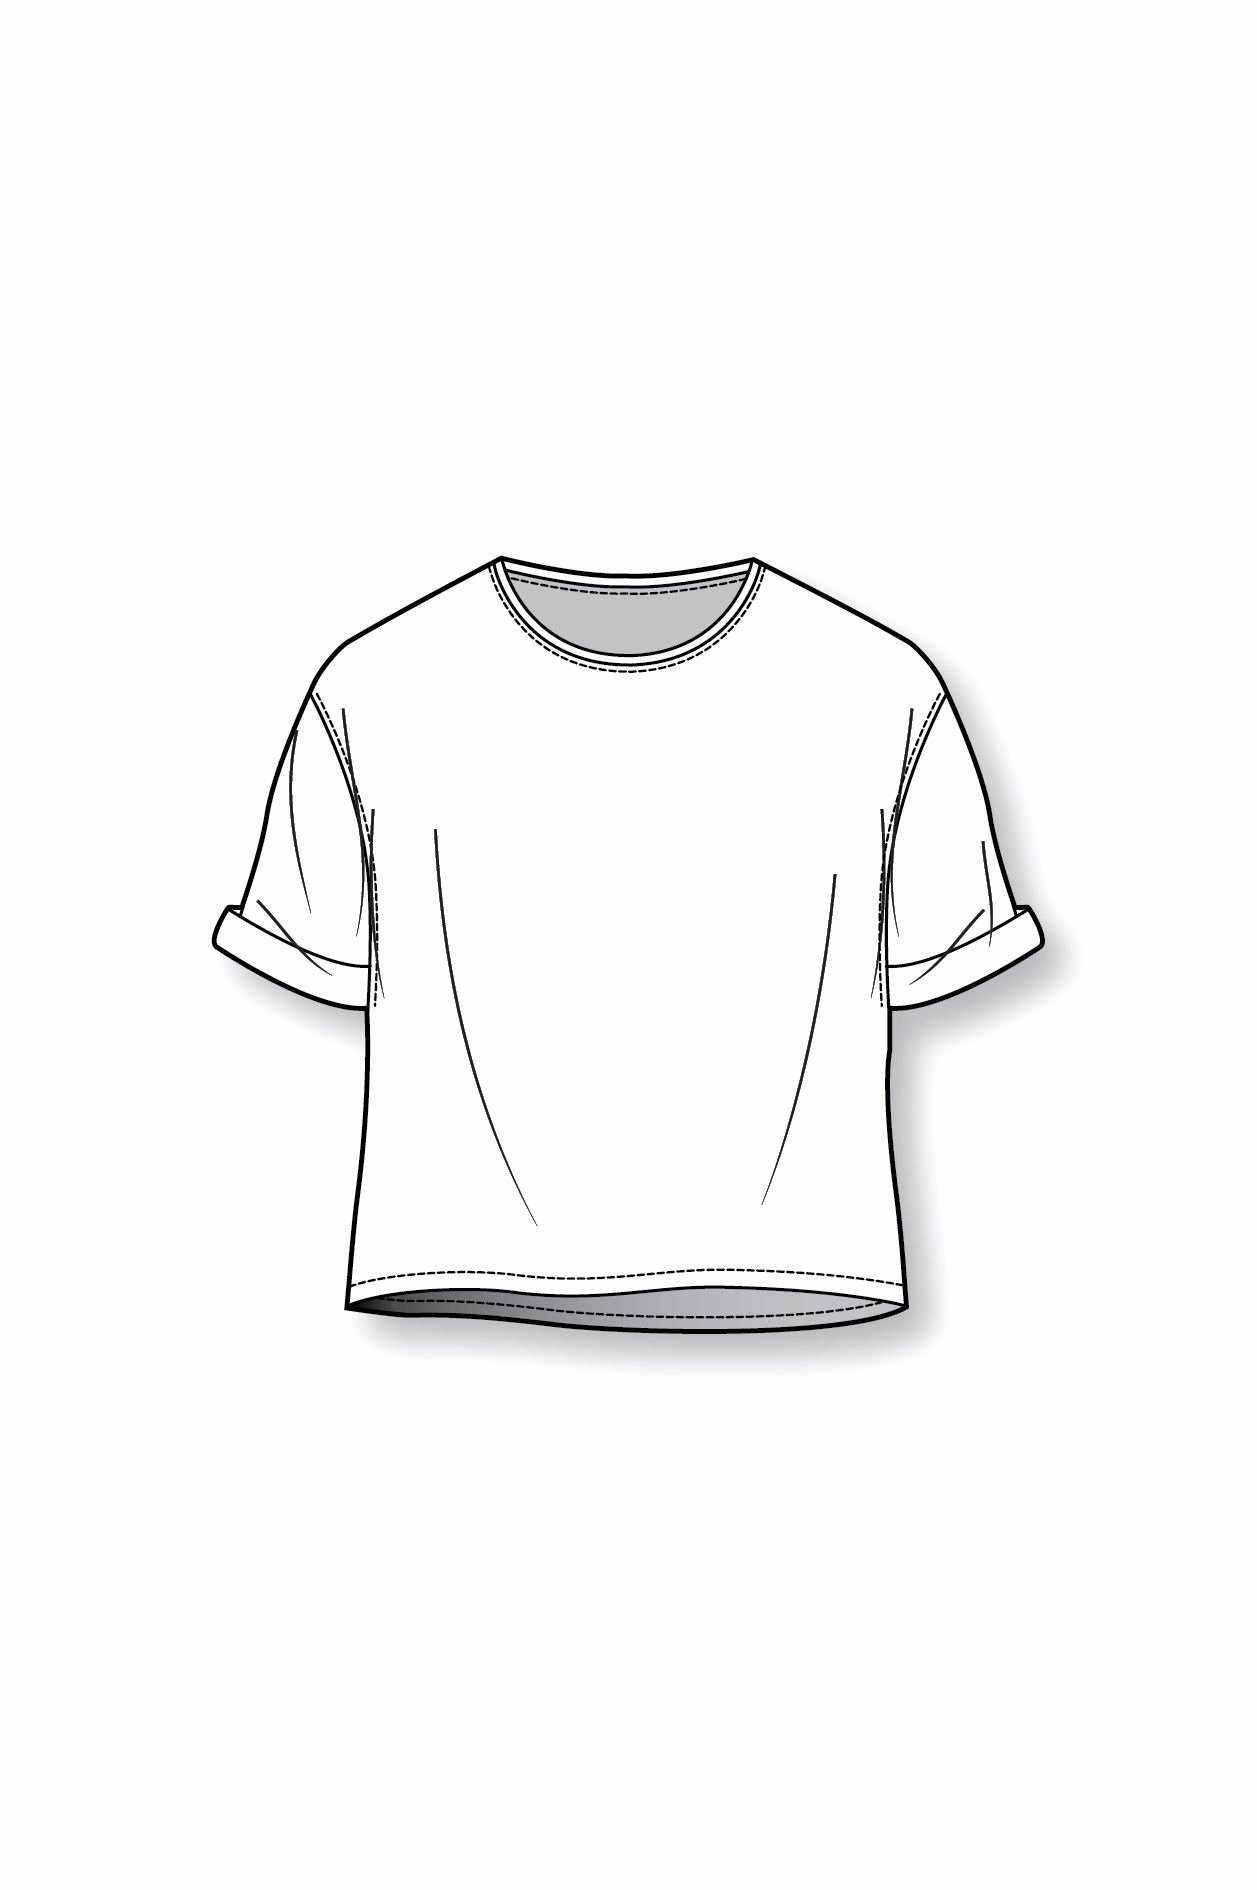 T-shirt Drawing Luxury Boxy T Shirt Patternmaking